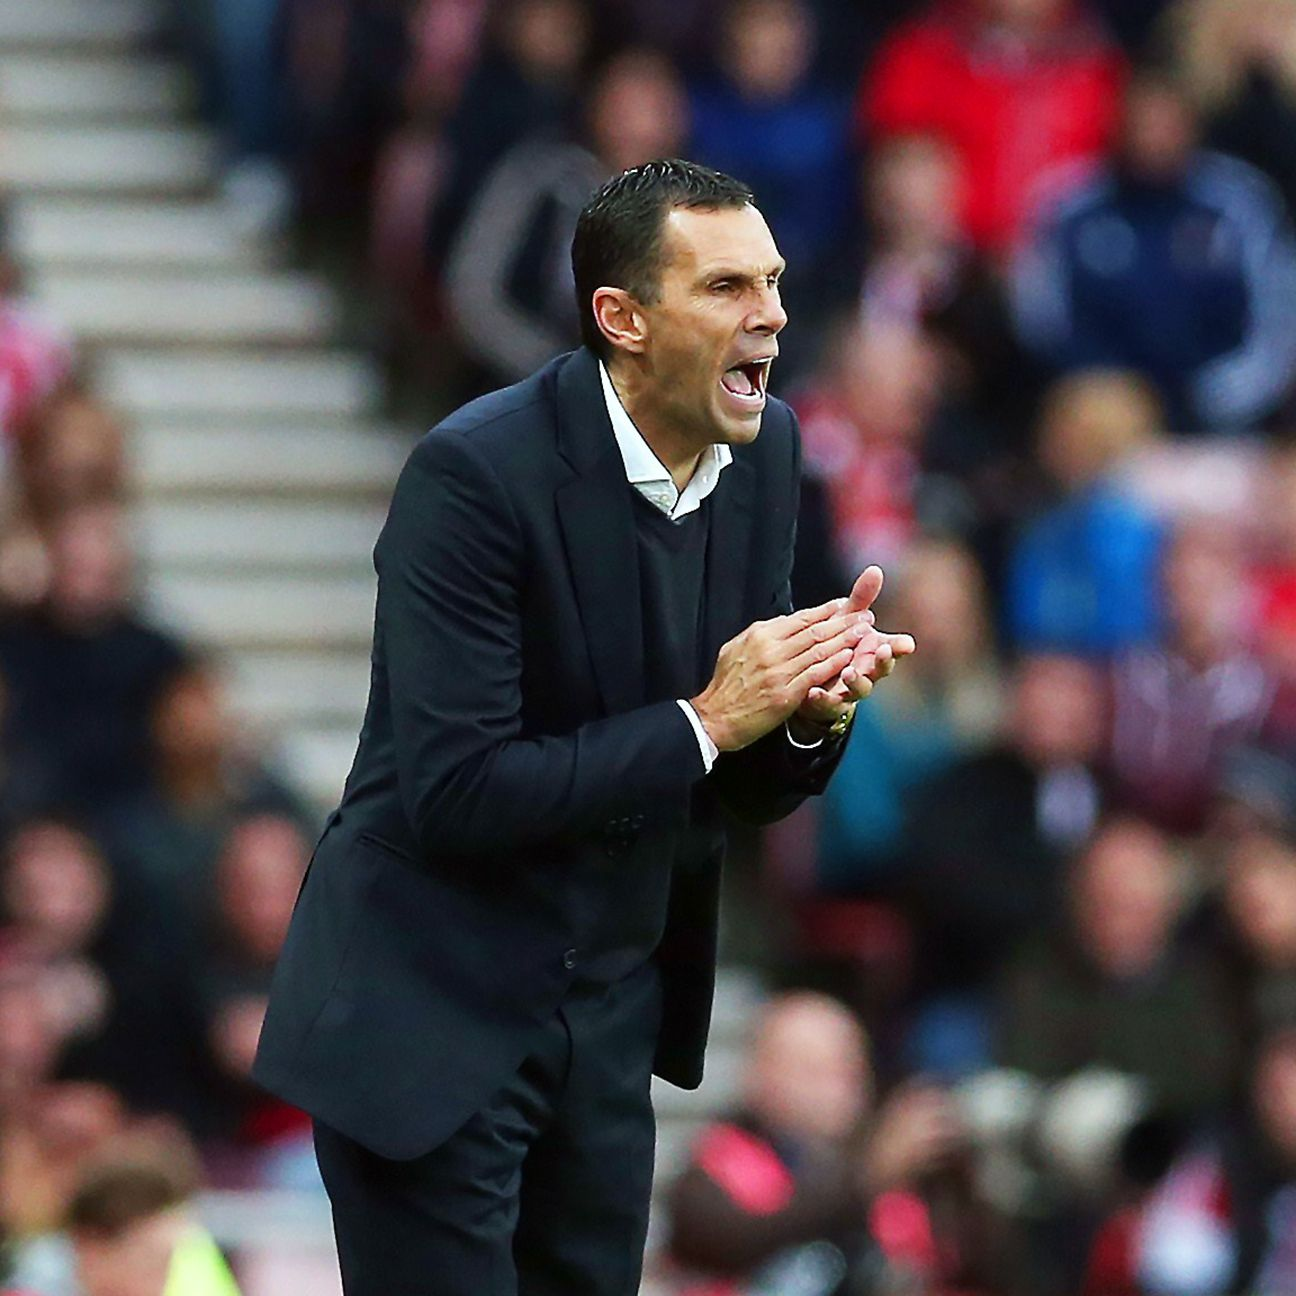 Gus Poyet's Sunderland have been outscored 10-0 in their last two matches.